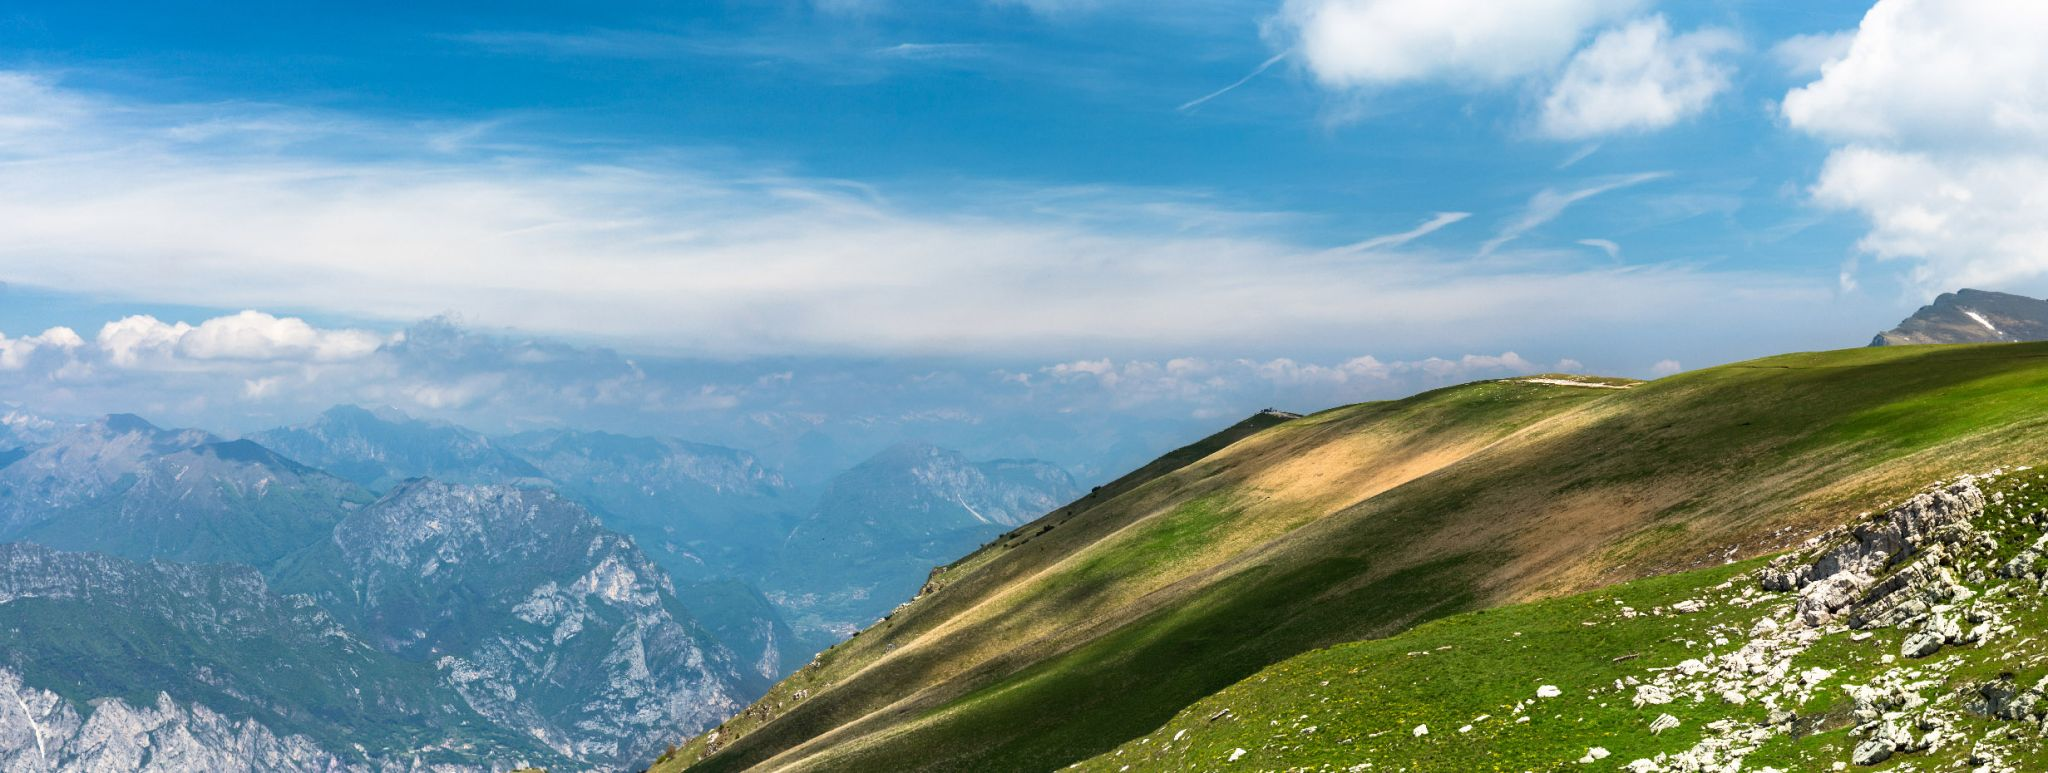 View from Mount Monte Baldo, Italy